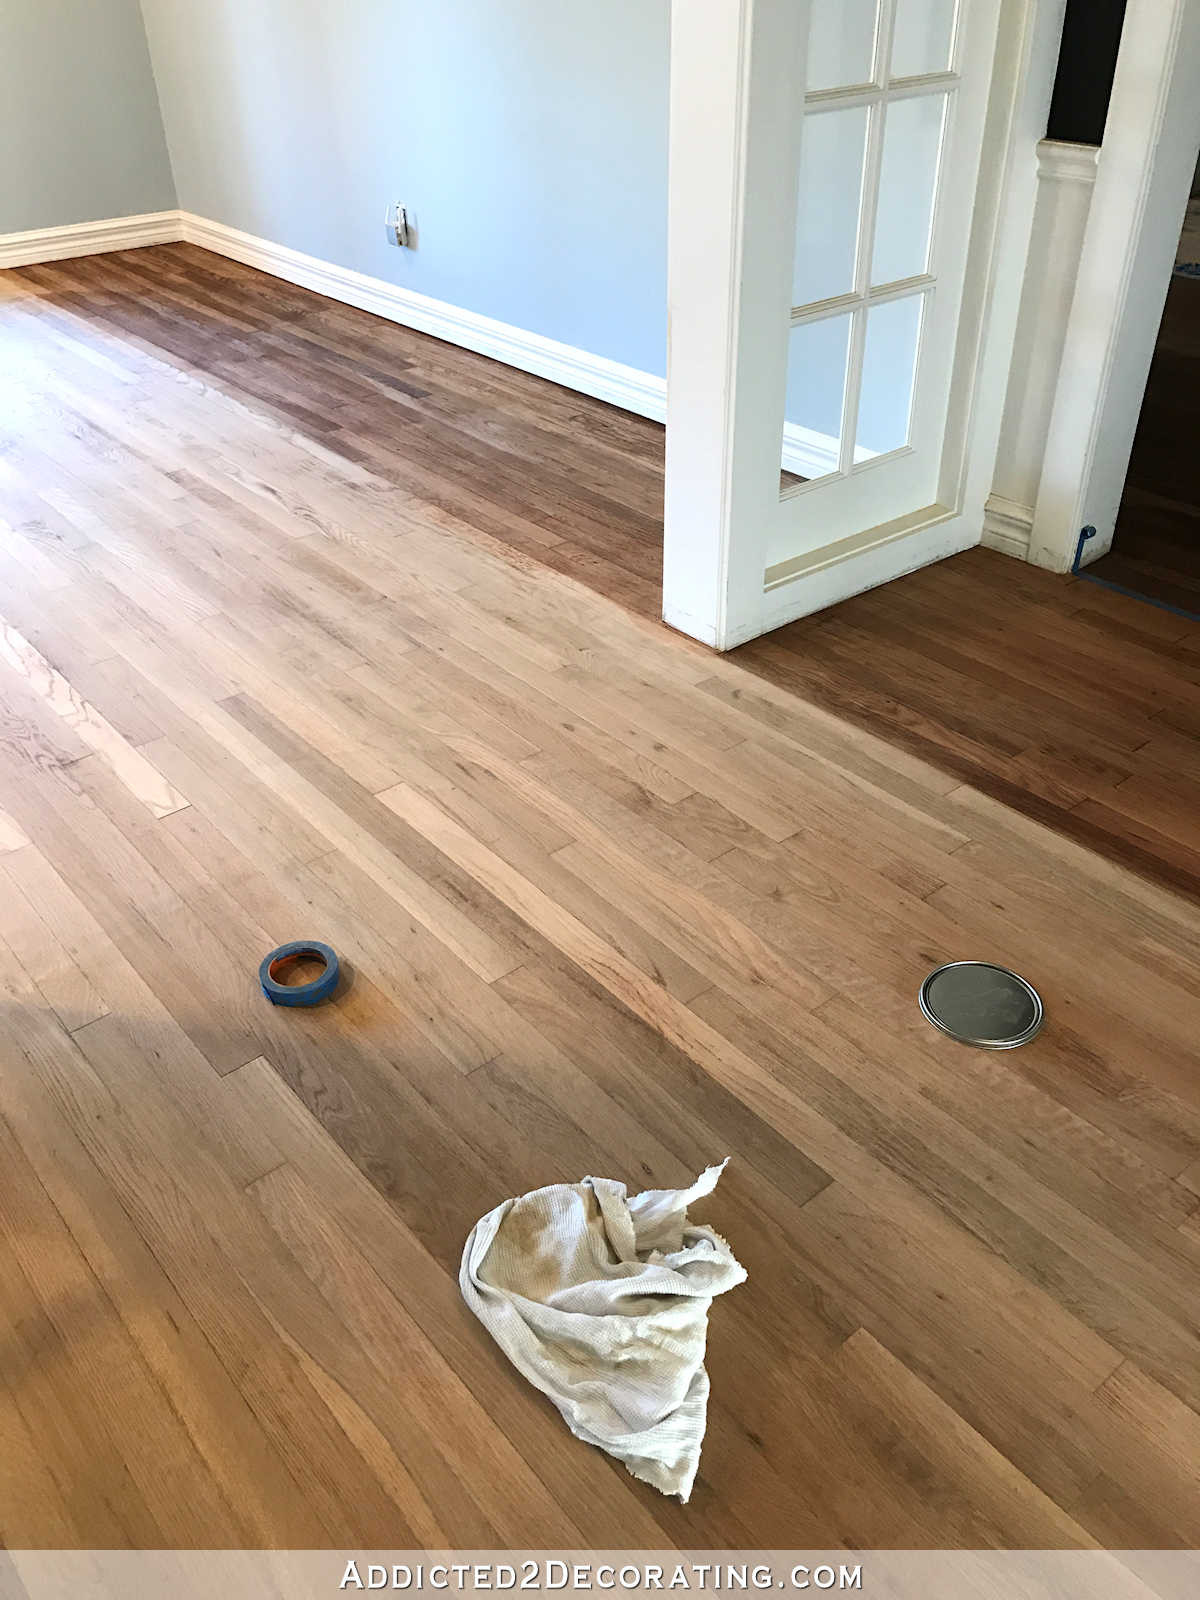 hardwood floor colors 2017 of adventures in staining my red oak hardwood floors products process for staining red oak hardwood floors 3 entryway and music room